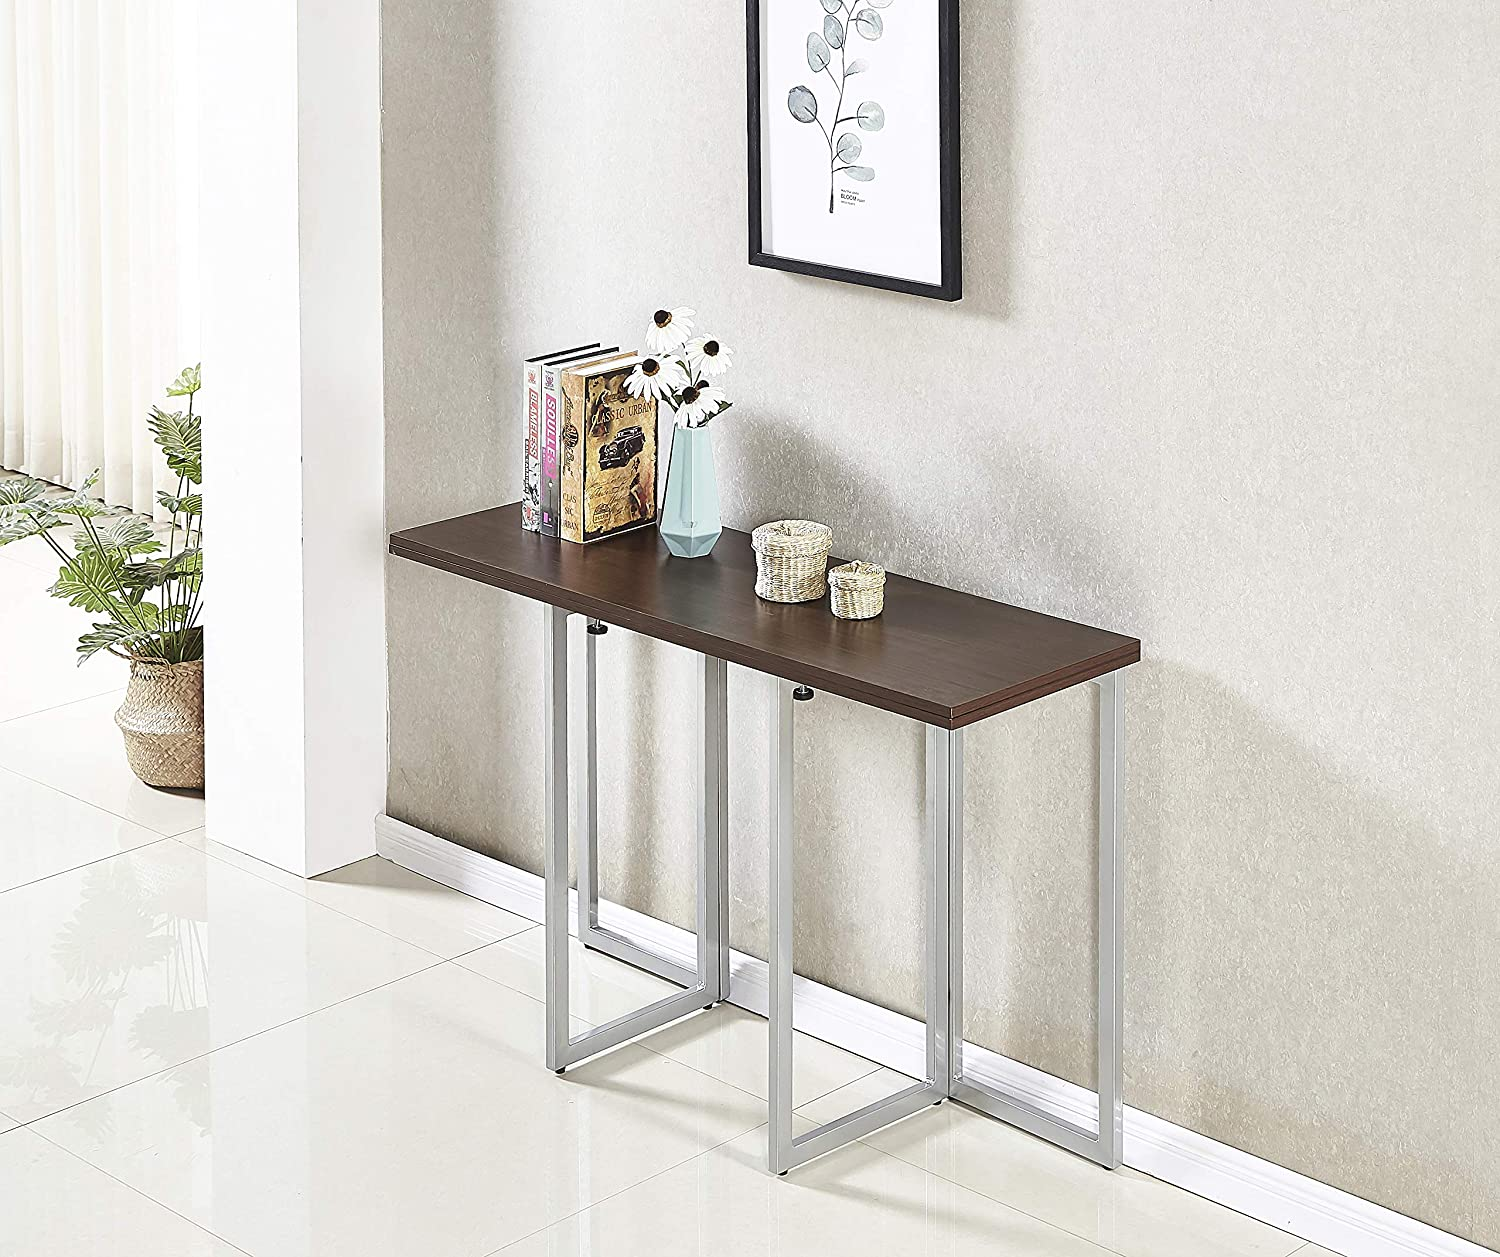 Amazon Com Minimax Decor Multi Purpose Modern Space Saving Expandable Desk And Dining Table Transforms From A Console Table Or Desk To A Large Dining Table Seats 6 When Fully Extended Black Melamine